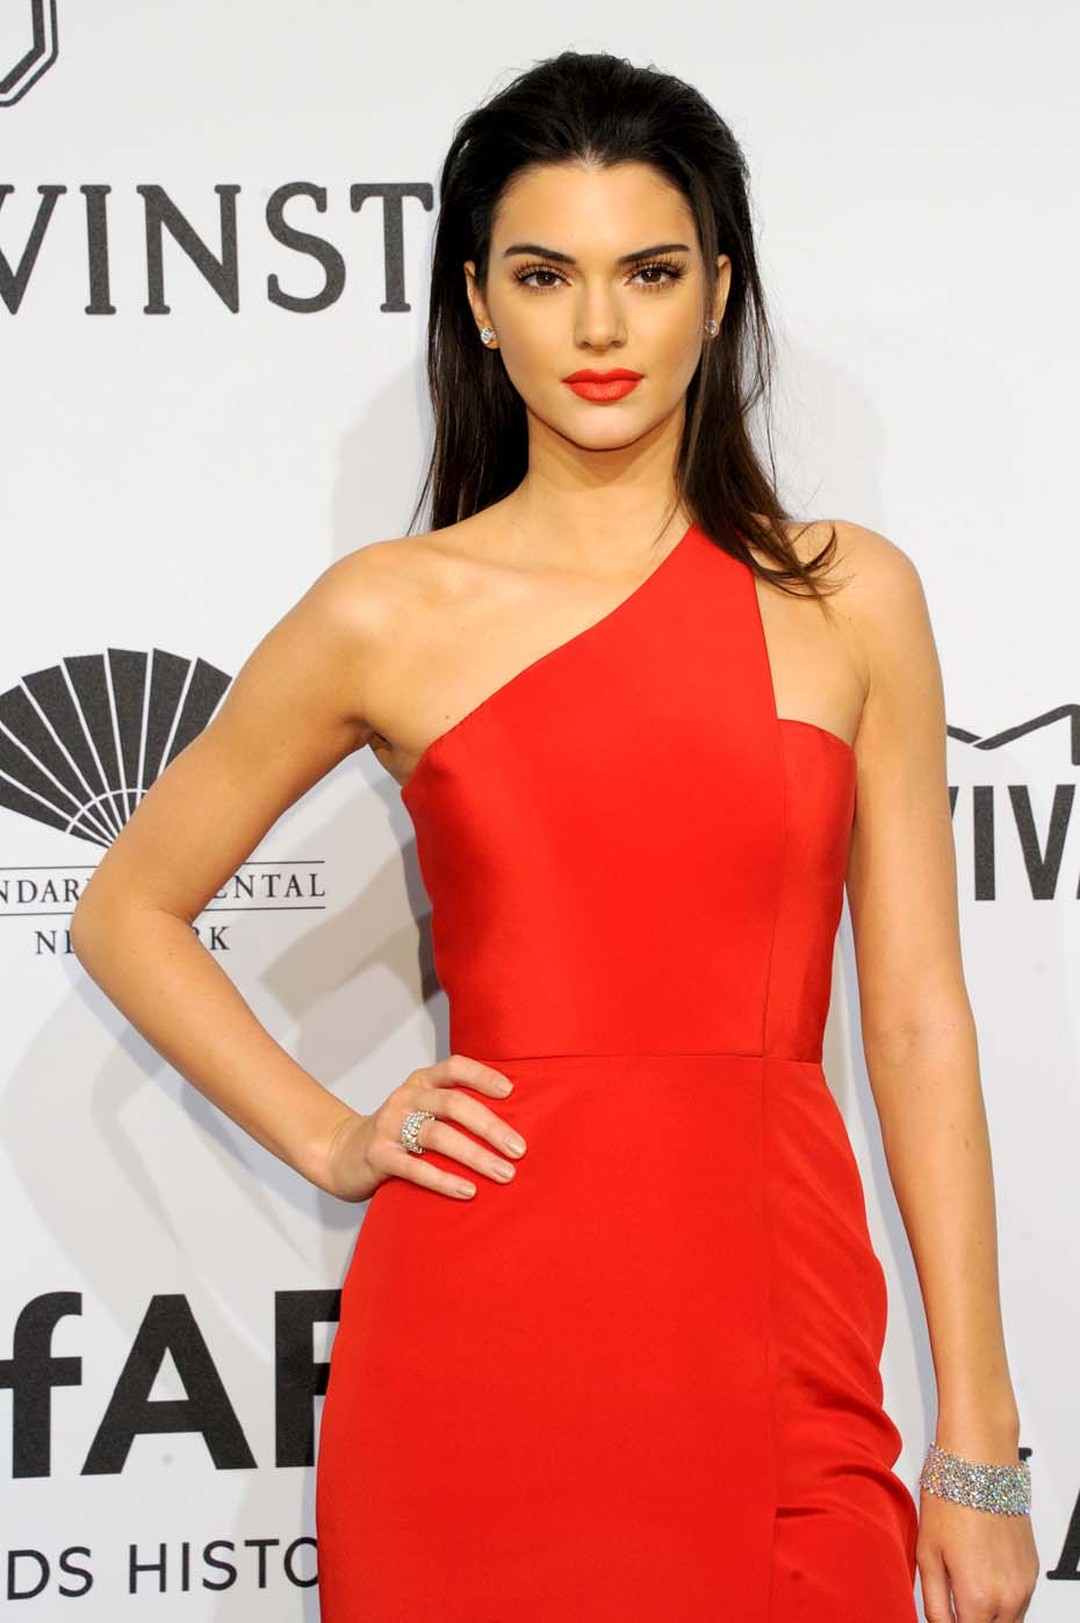 Model and reality TV star Kendall Jenner accessorised her bright red outfit with stunning Harry Winston high jewellery diamond pieces all set in platinum, including 6.27 carat diamond ear studs, an emerald-cut diamond Carpet Bracelet, and a 3-row, 12.3 ca